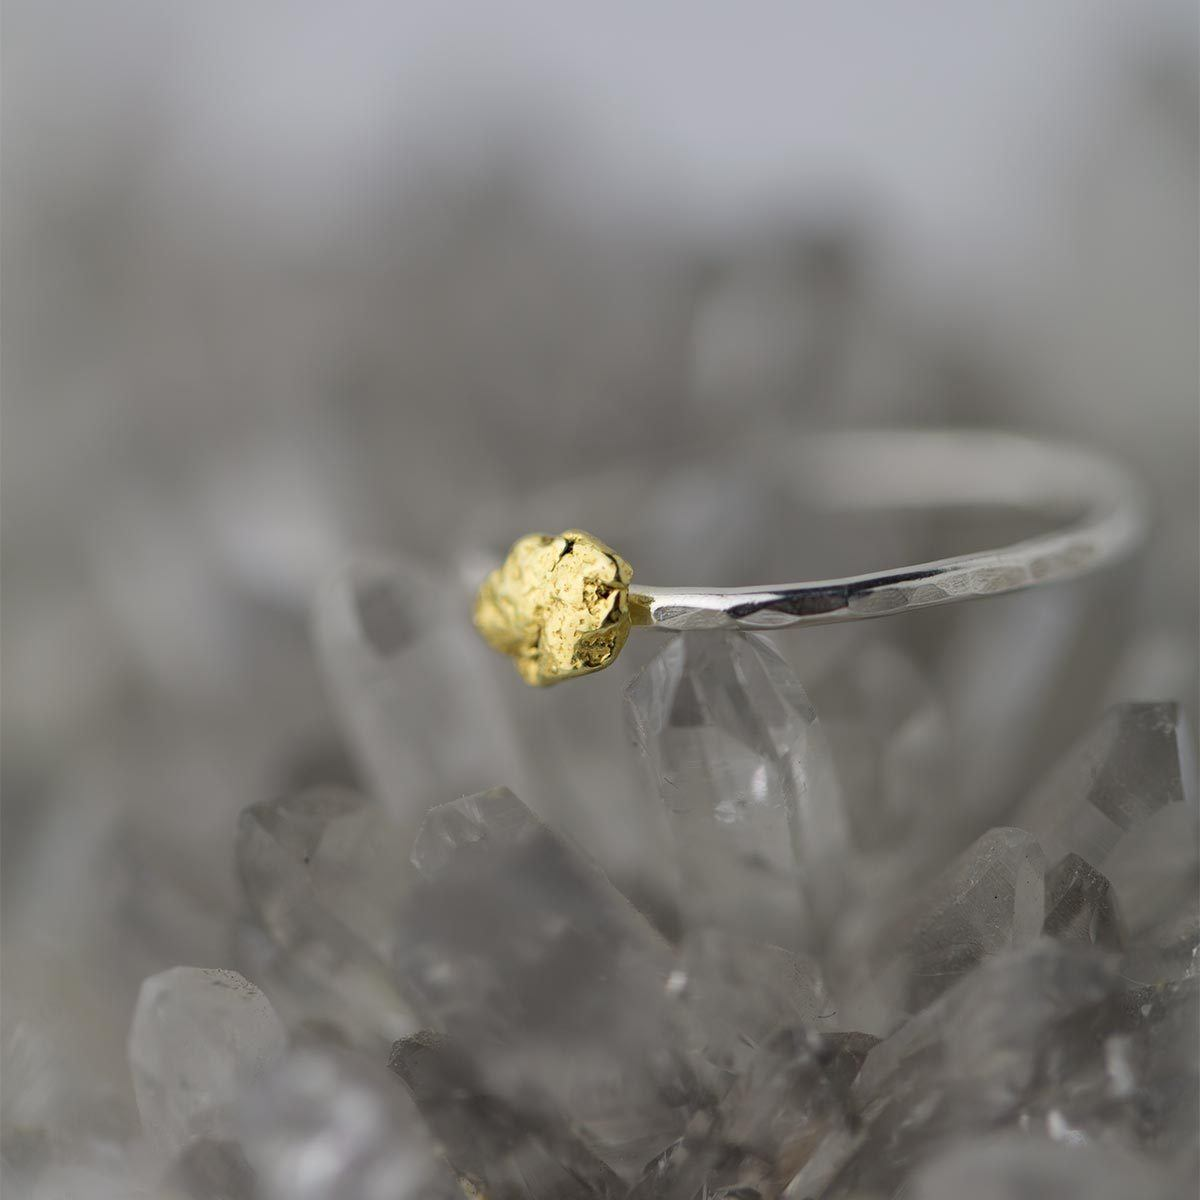 Alaska Gold Nugget & Sterling Silver Ring - Handmade Jewelry by Burnish